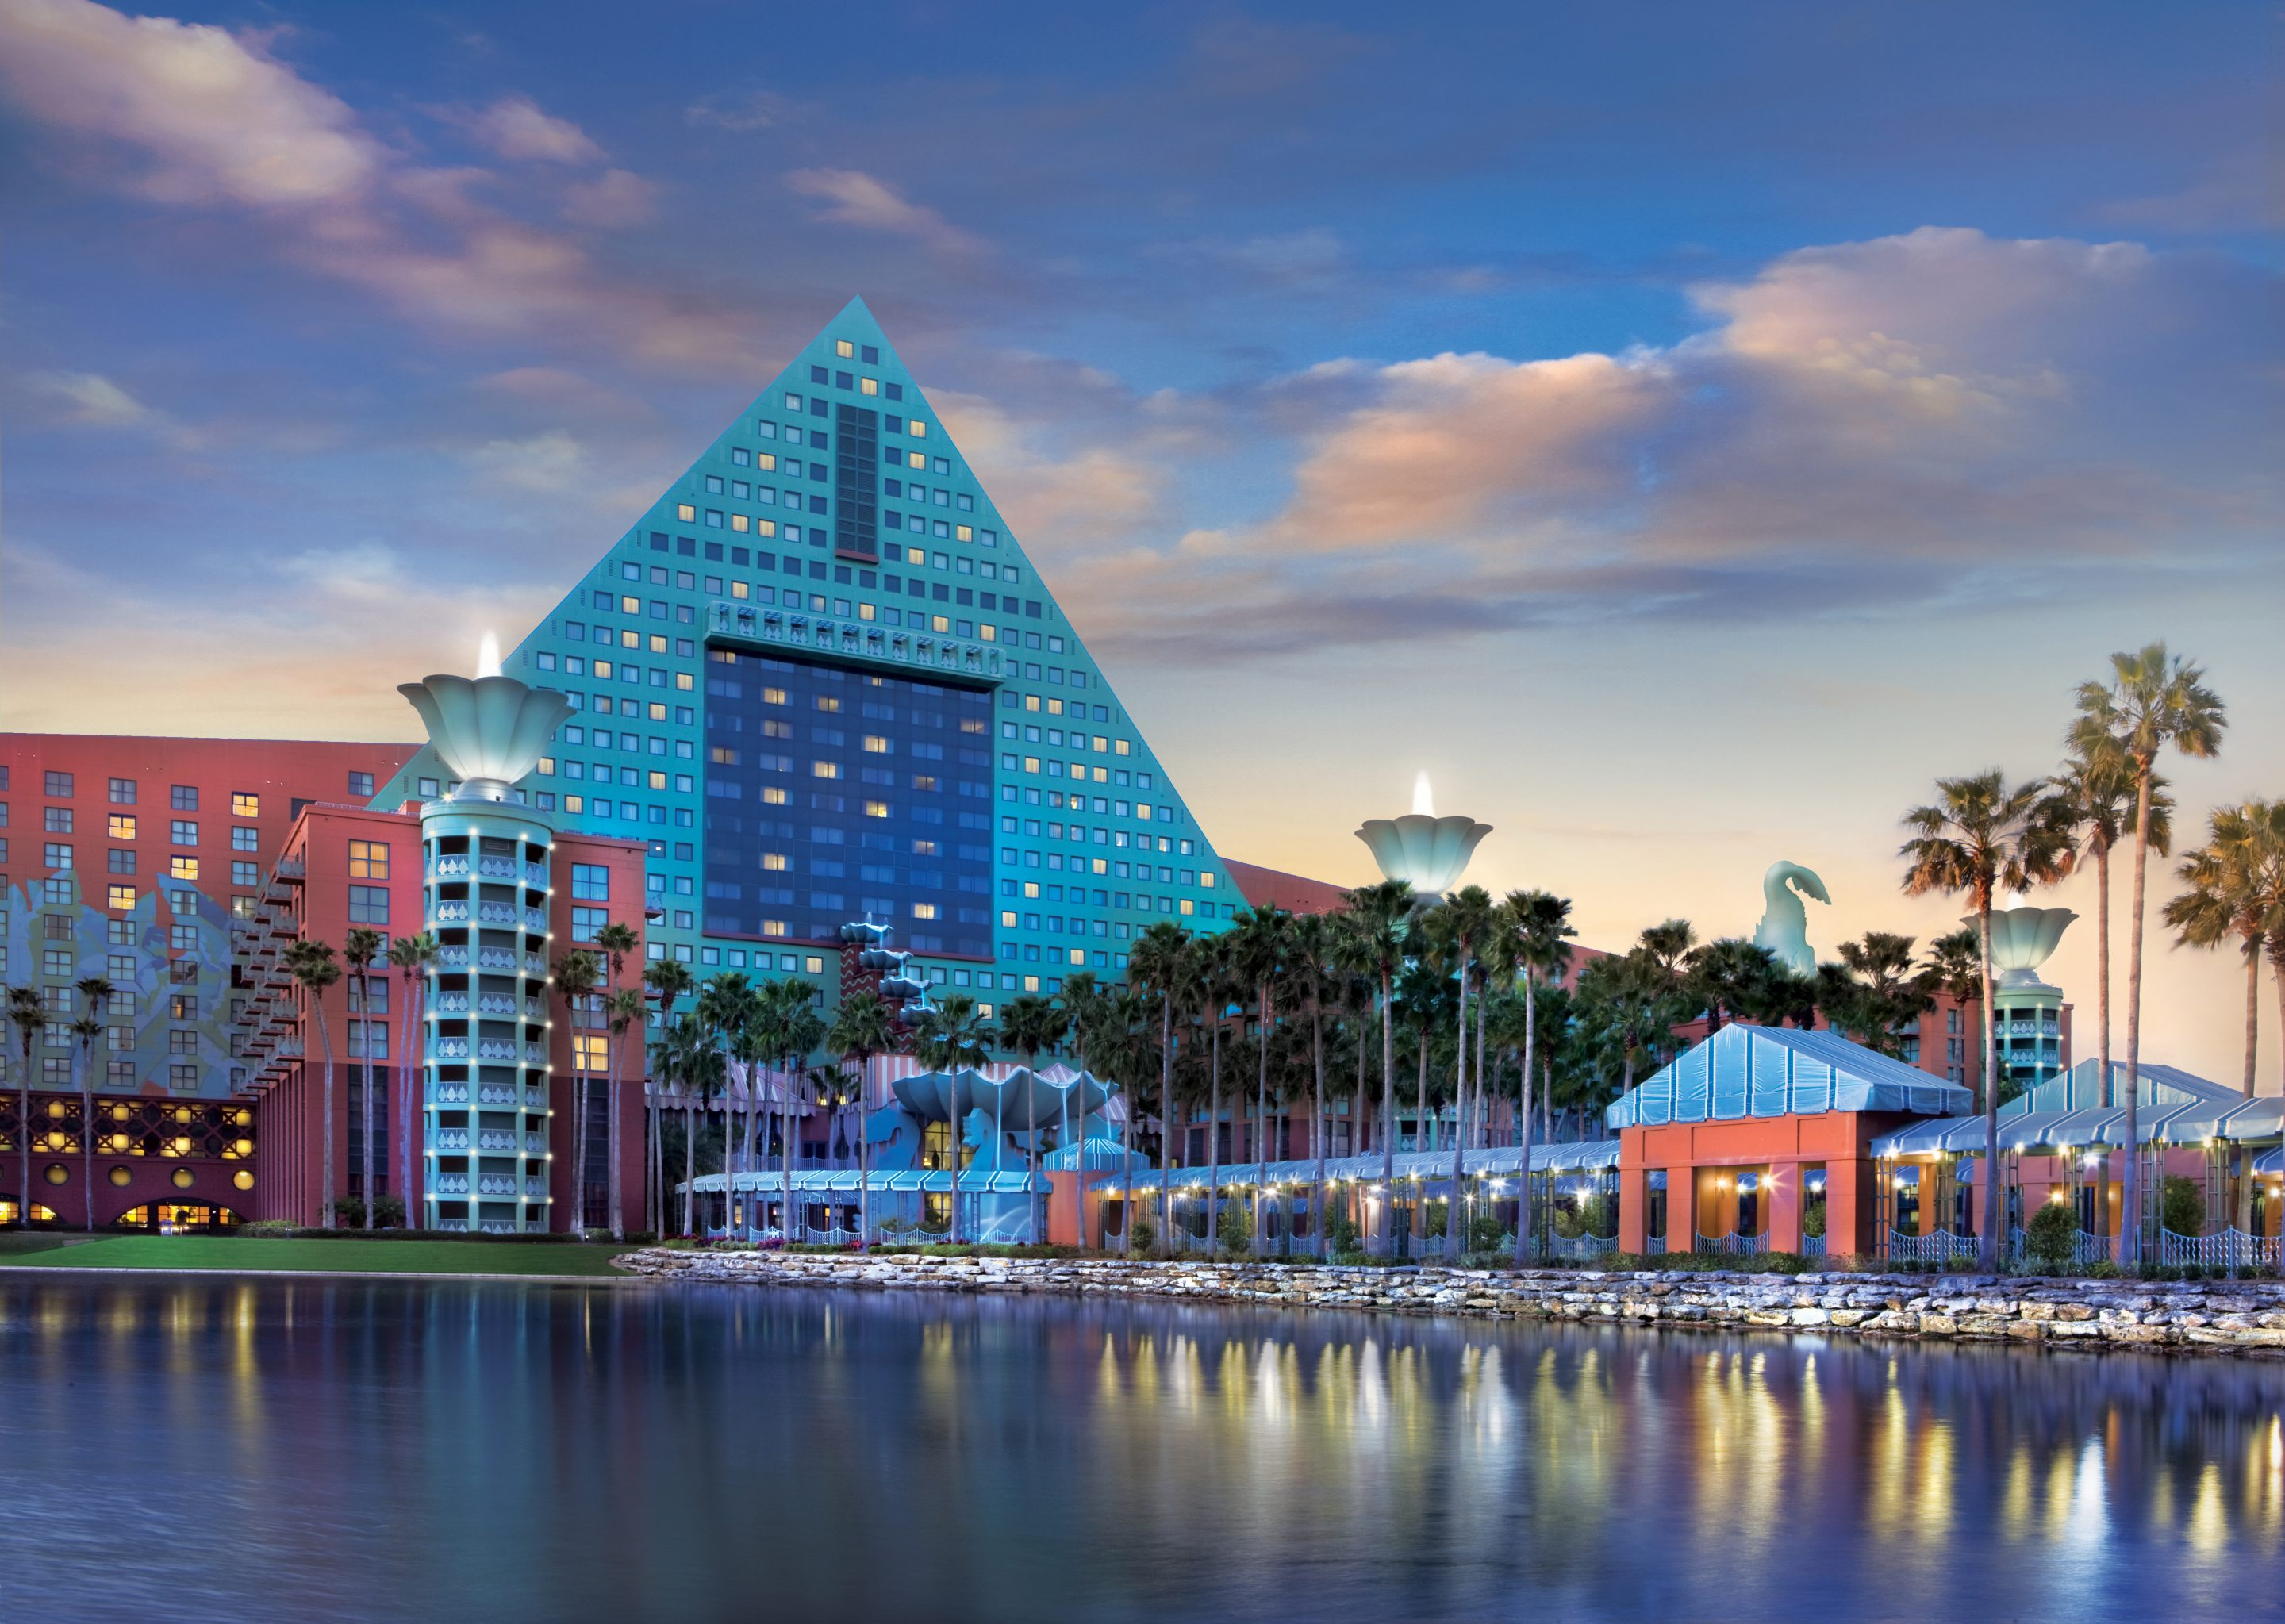 Celebrate the Olympic Games at the Walt Disney World Dolphin Hotel